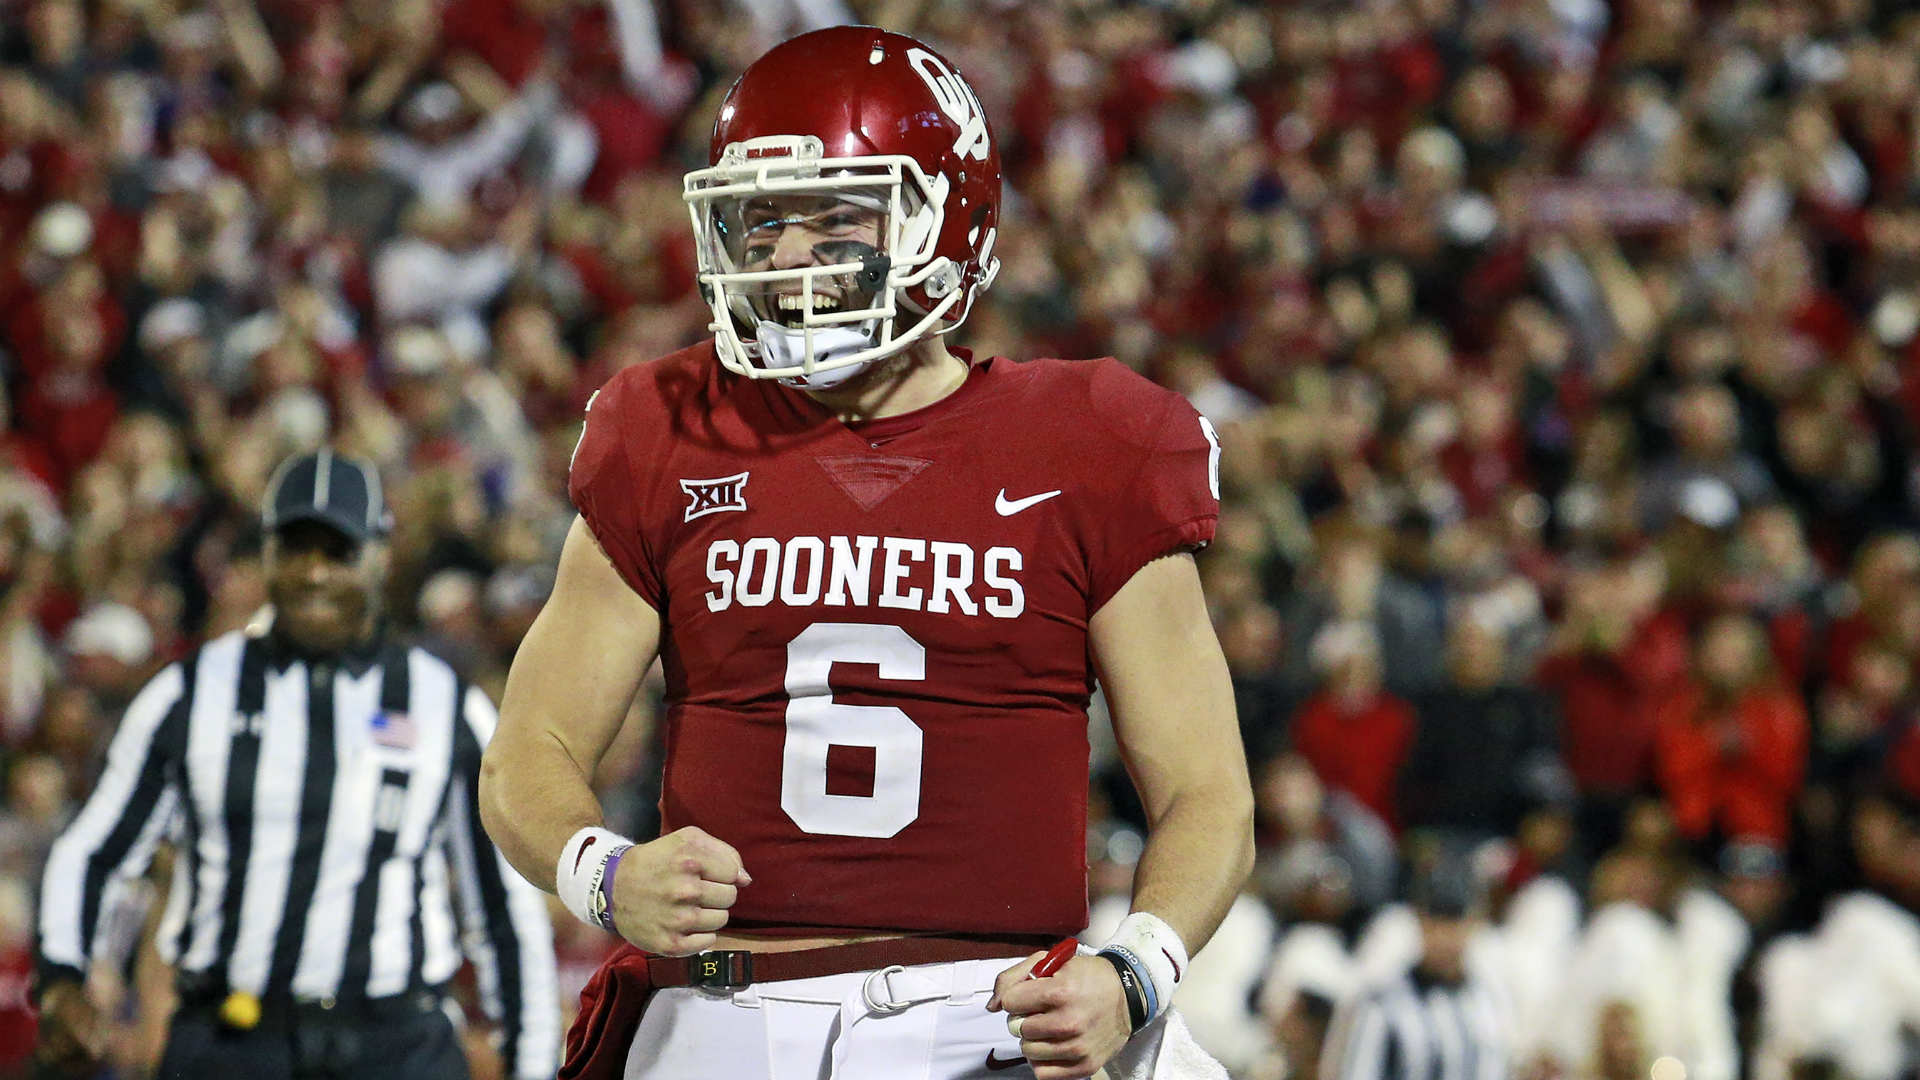 Three takeaways from No. 5 Oklahoma's blowout win of No. 6 TCU